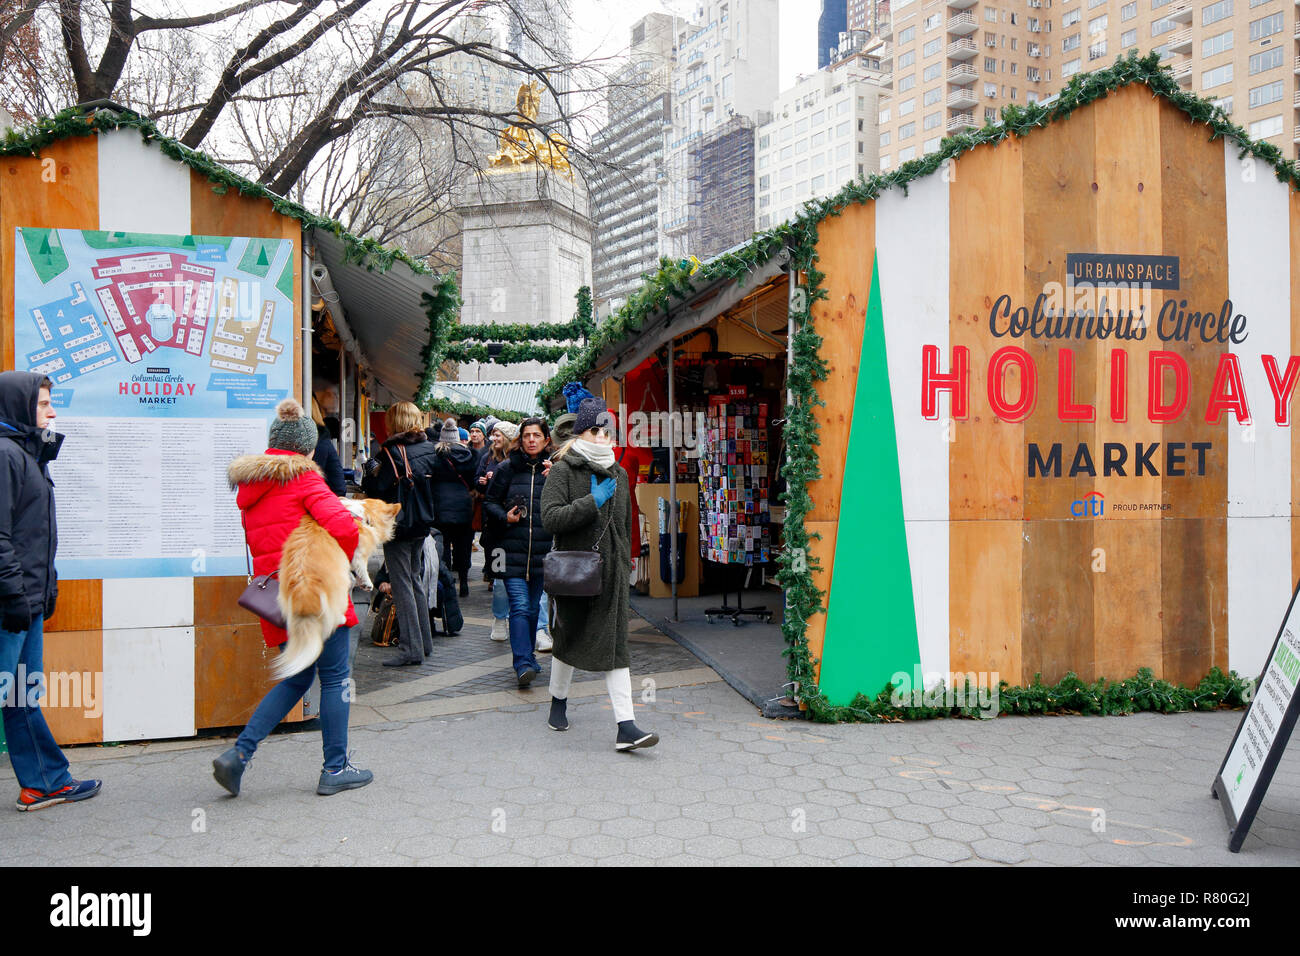 People near the entrance to Columbus Circle Holiday Market in Central Park with the Maine Monument in the background, New York City Stock Photo